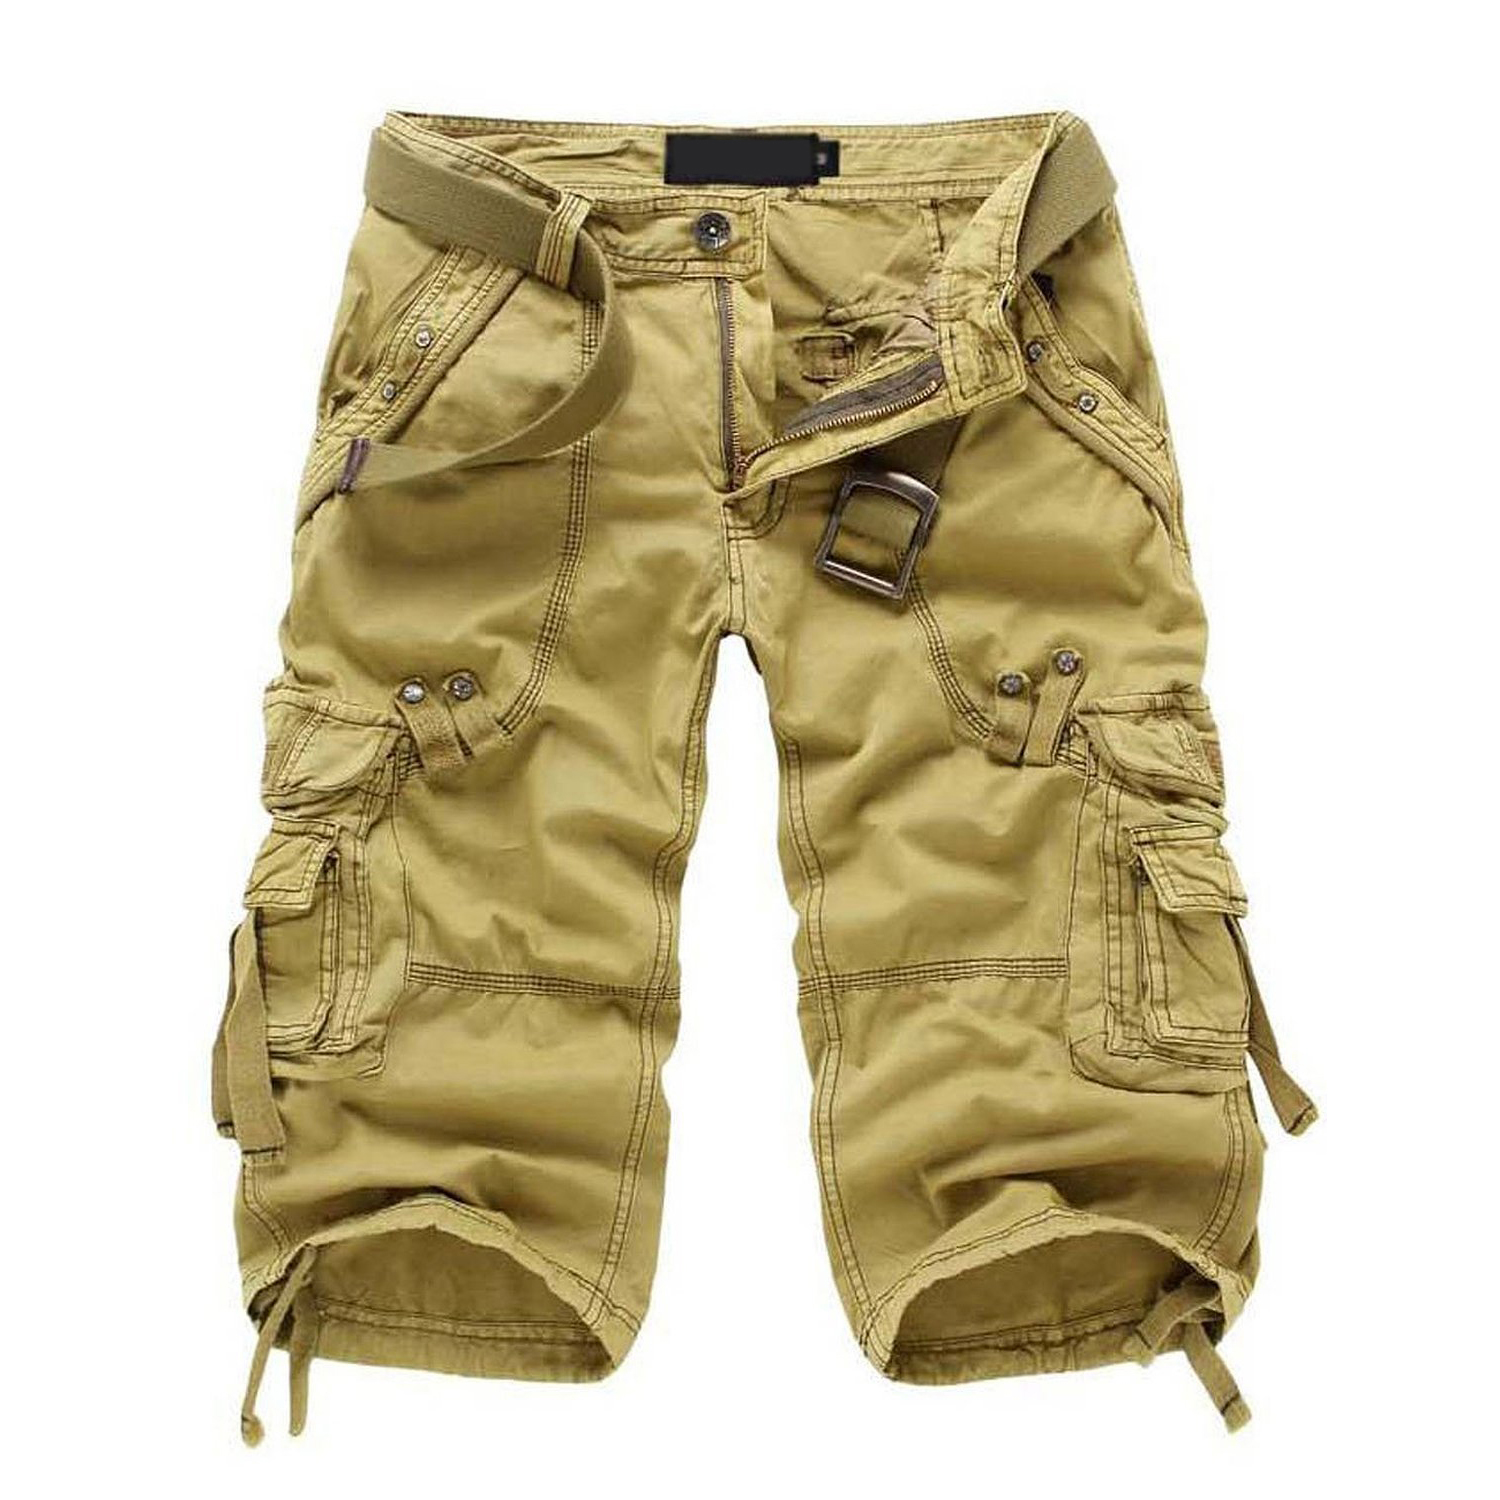 big and tall military cargo pants - Pi Pants